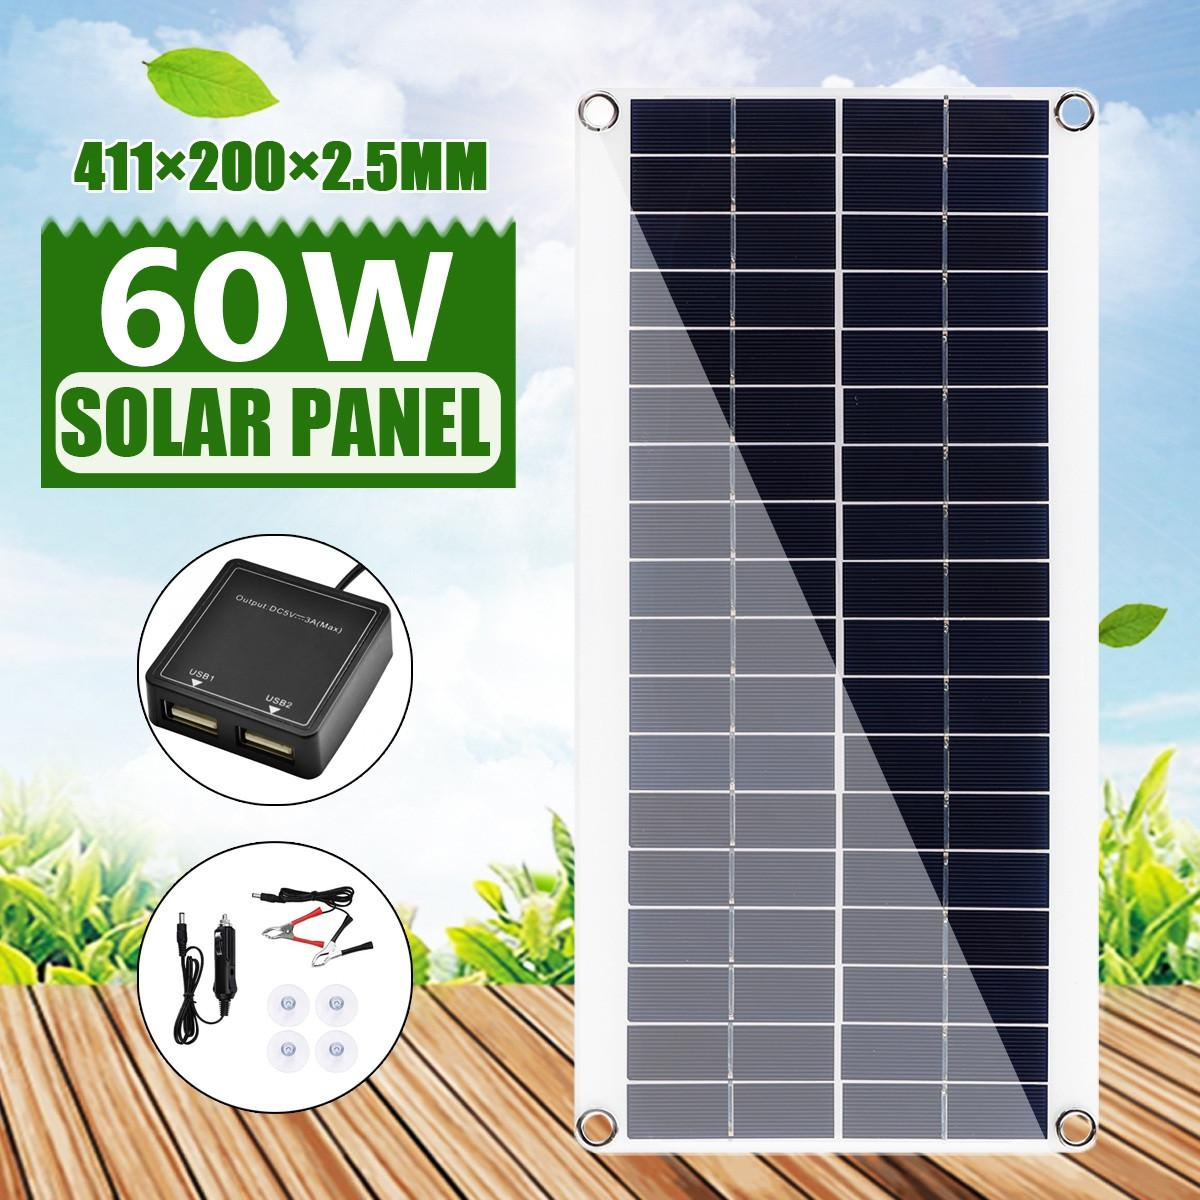 60W DC 18V Solar Panel Battery Charger Portable Solar Cell Board Crocodile Clips Car Charger For Phone RV Car 411X200X2.5MM